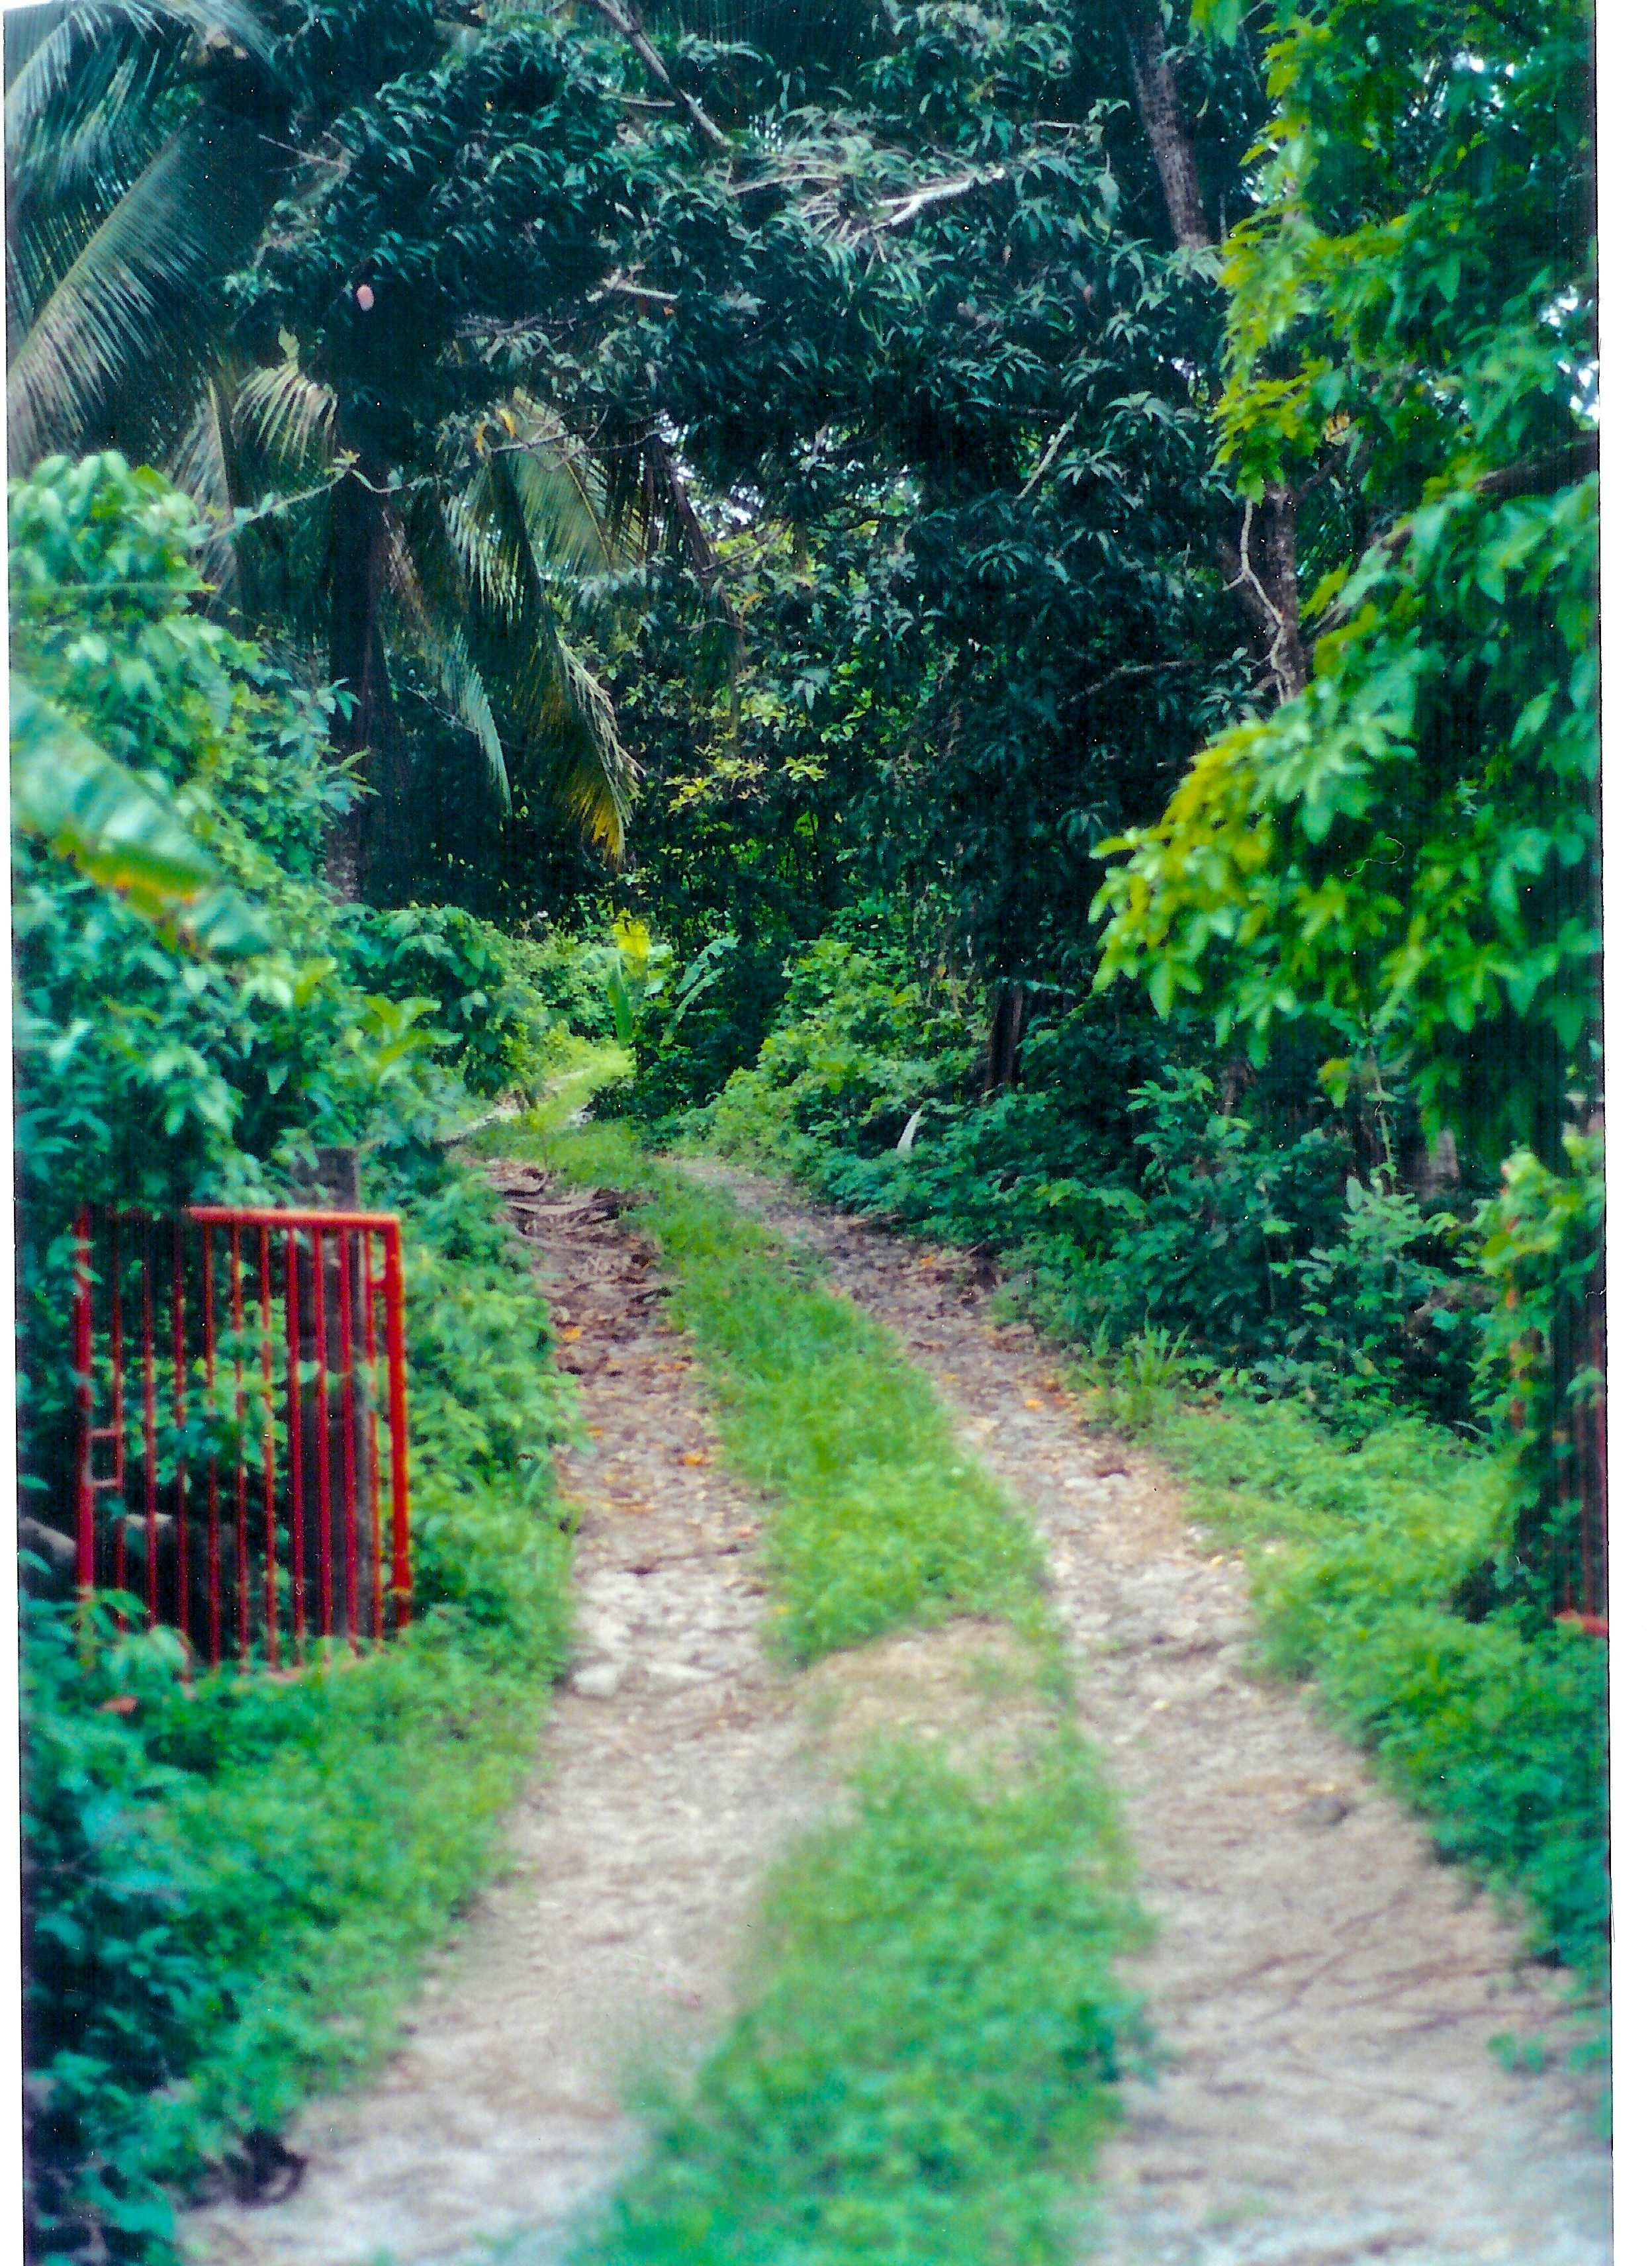 Jungle gate vegetation